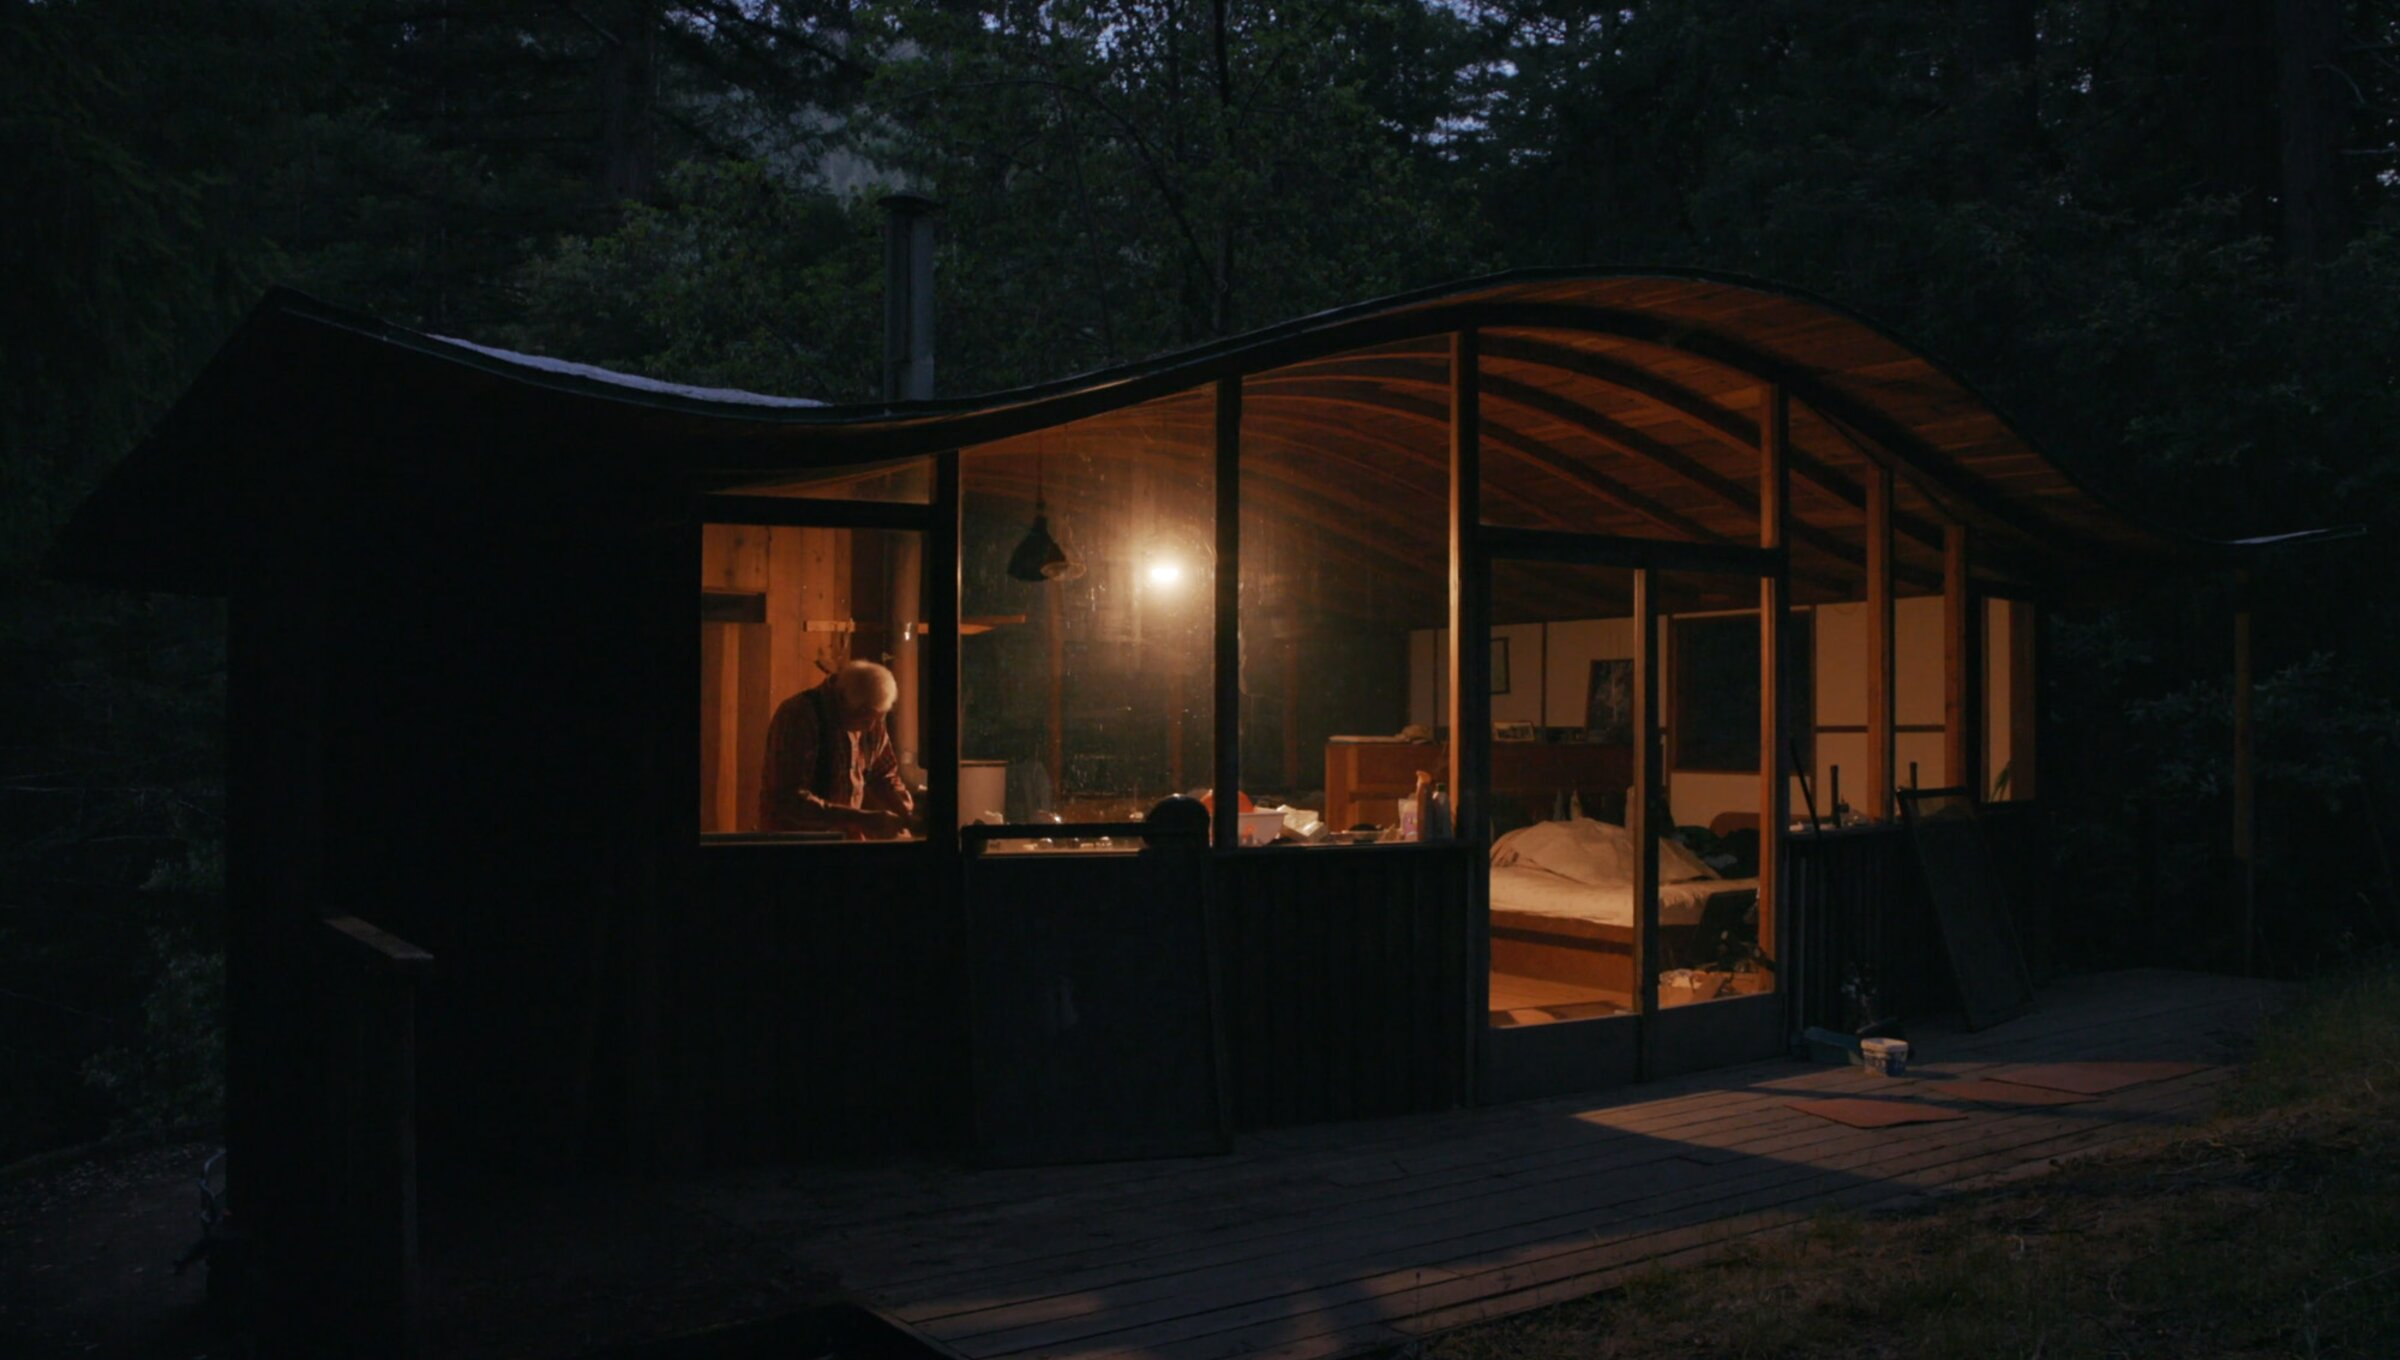 From modernist architect, to a life off-grid, a creative life well-lived | Psyche